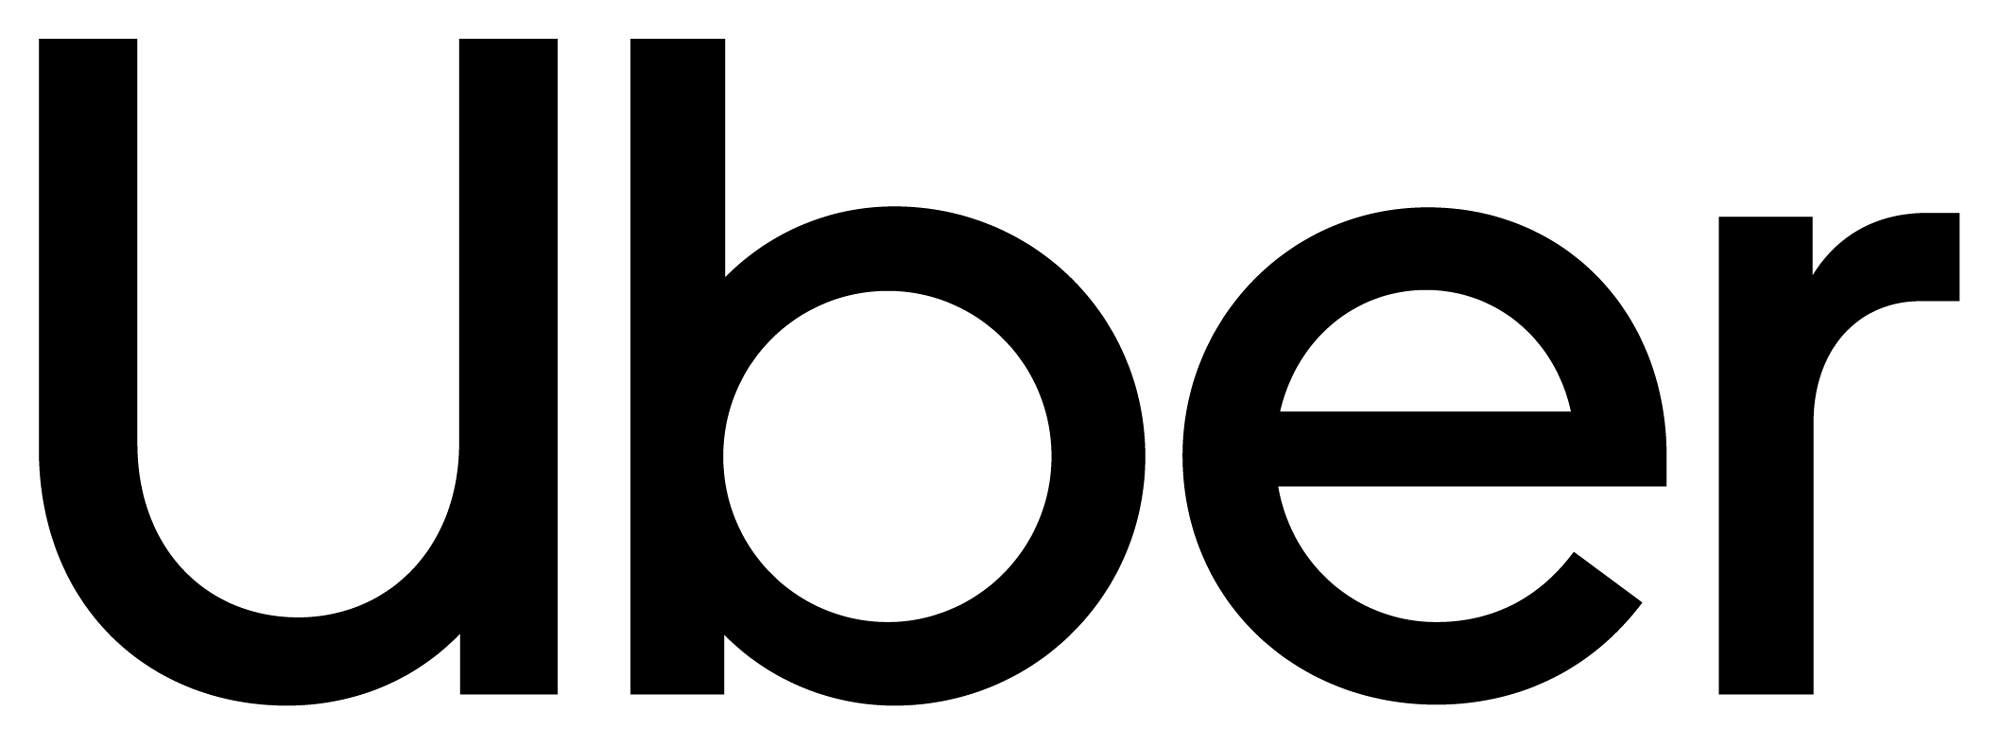 New Logo And Identity For Uber By Wolff Olins And In House Business Cards Online Sacred Architecture Business Card Design